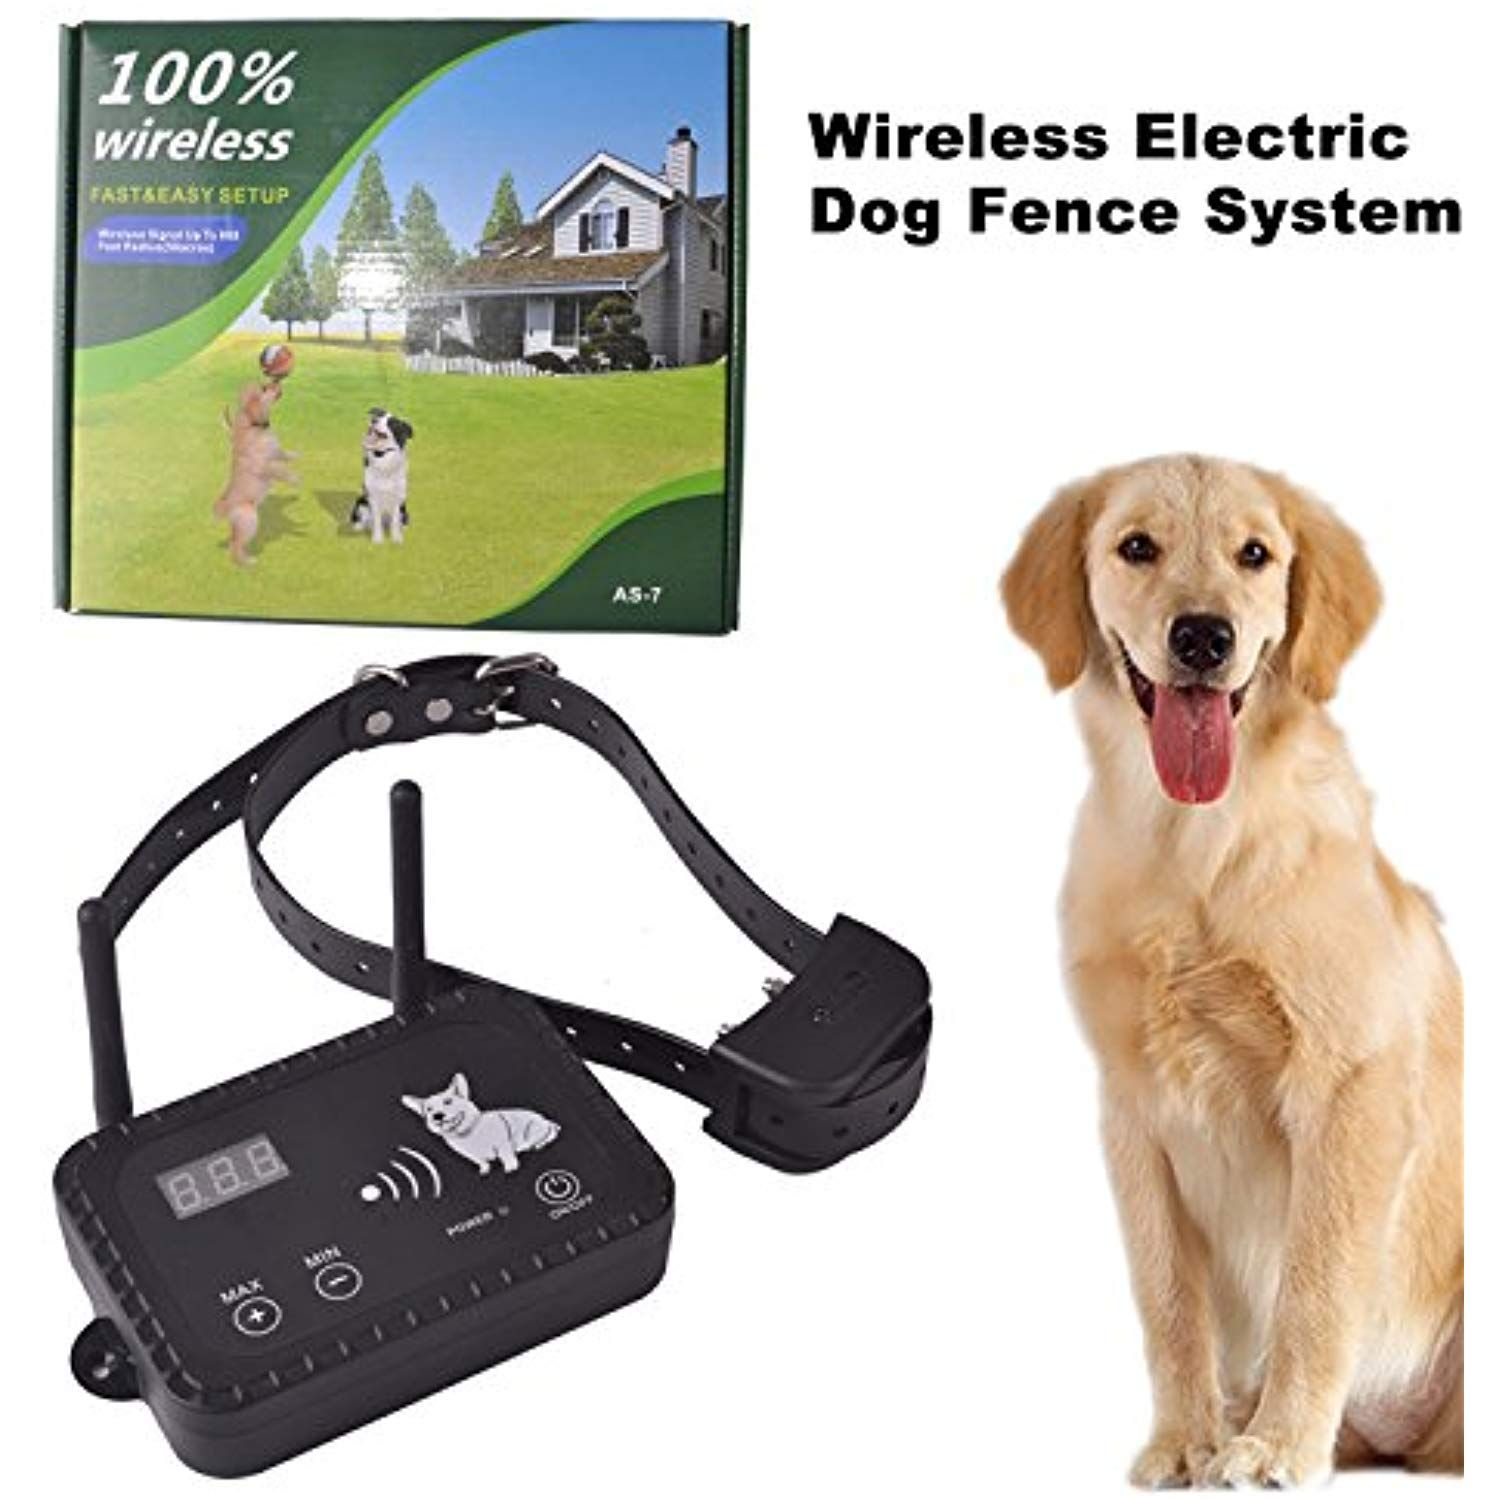 Okpet Wireless Electric Dog Fence System Outdoor Invisible Dog Fence Containment System Vibration Dogs With Images Invisible Fence Dog Fence Electric Fence